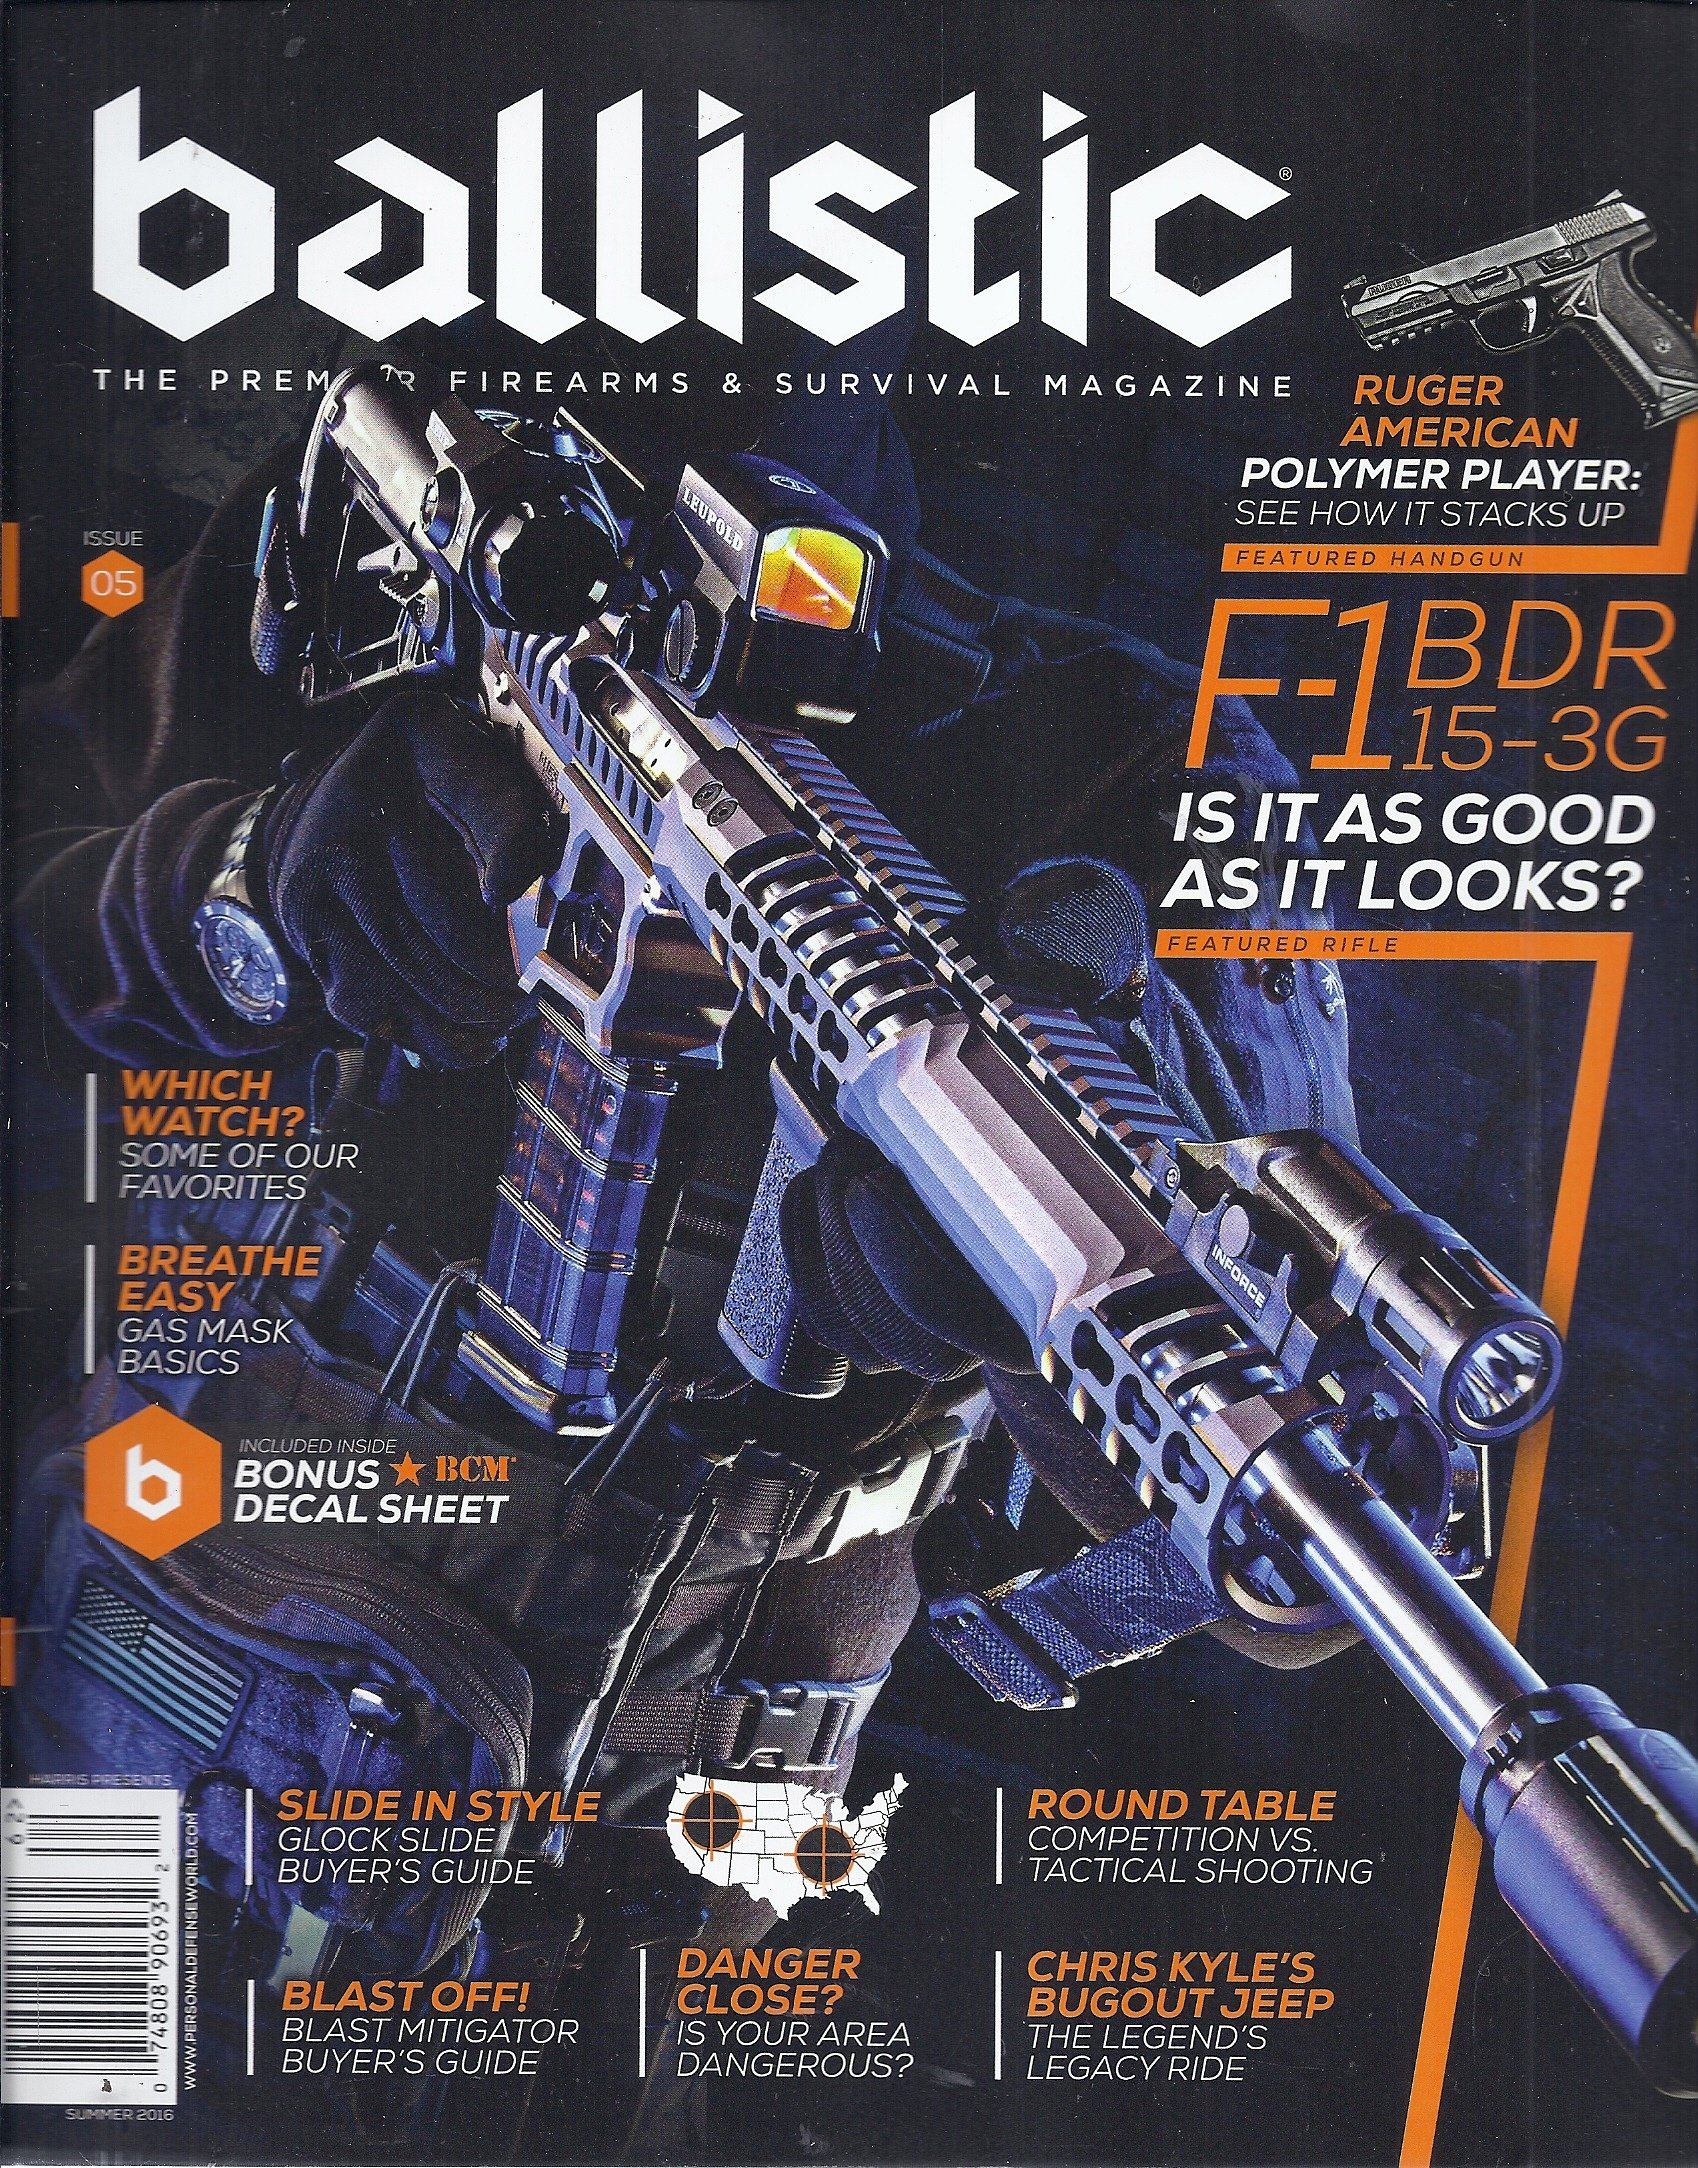 Harris Presents Ballistic Magazine (Summer 2016 - Cover: F-1 BDR 15-3G pdf epub